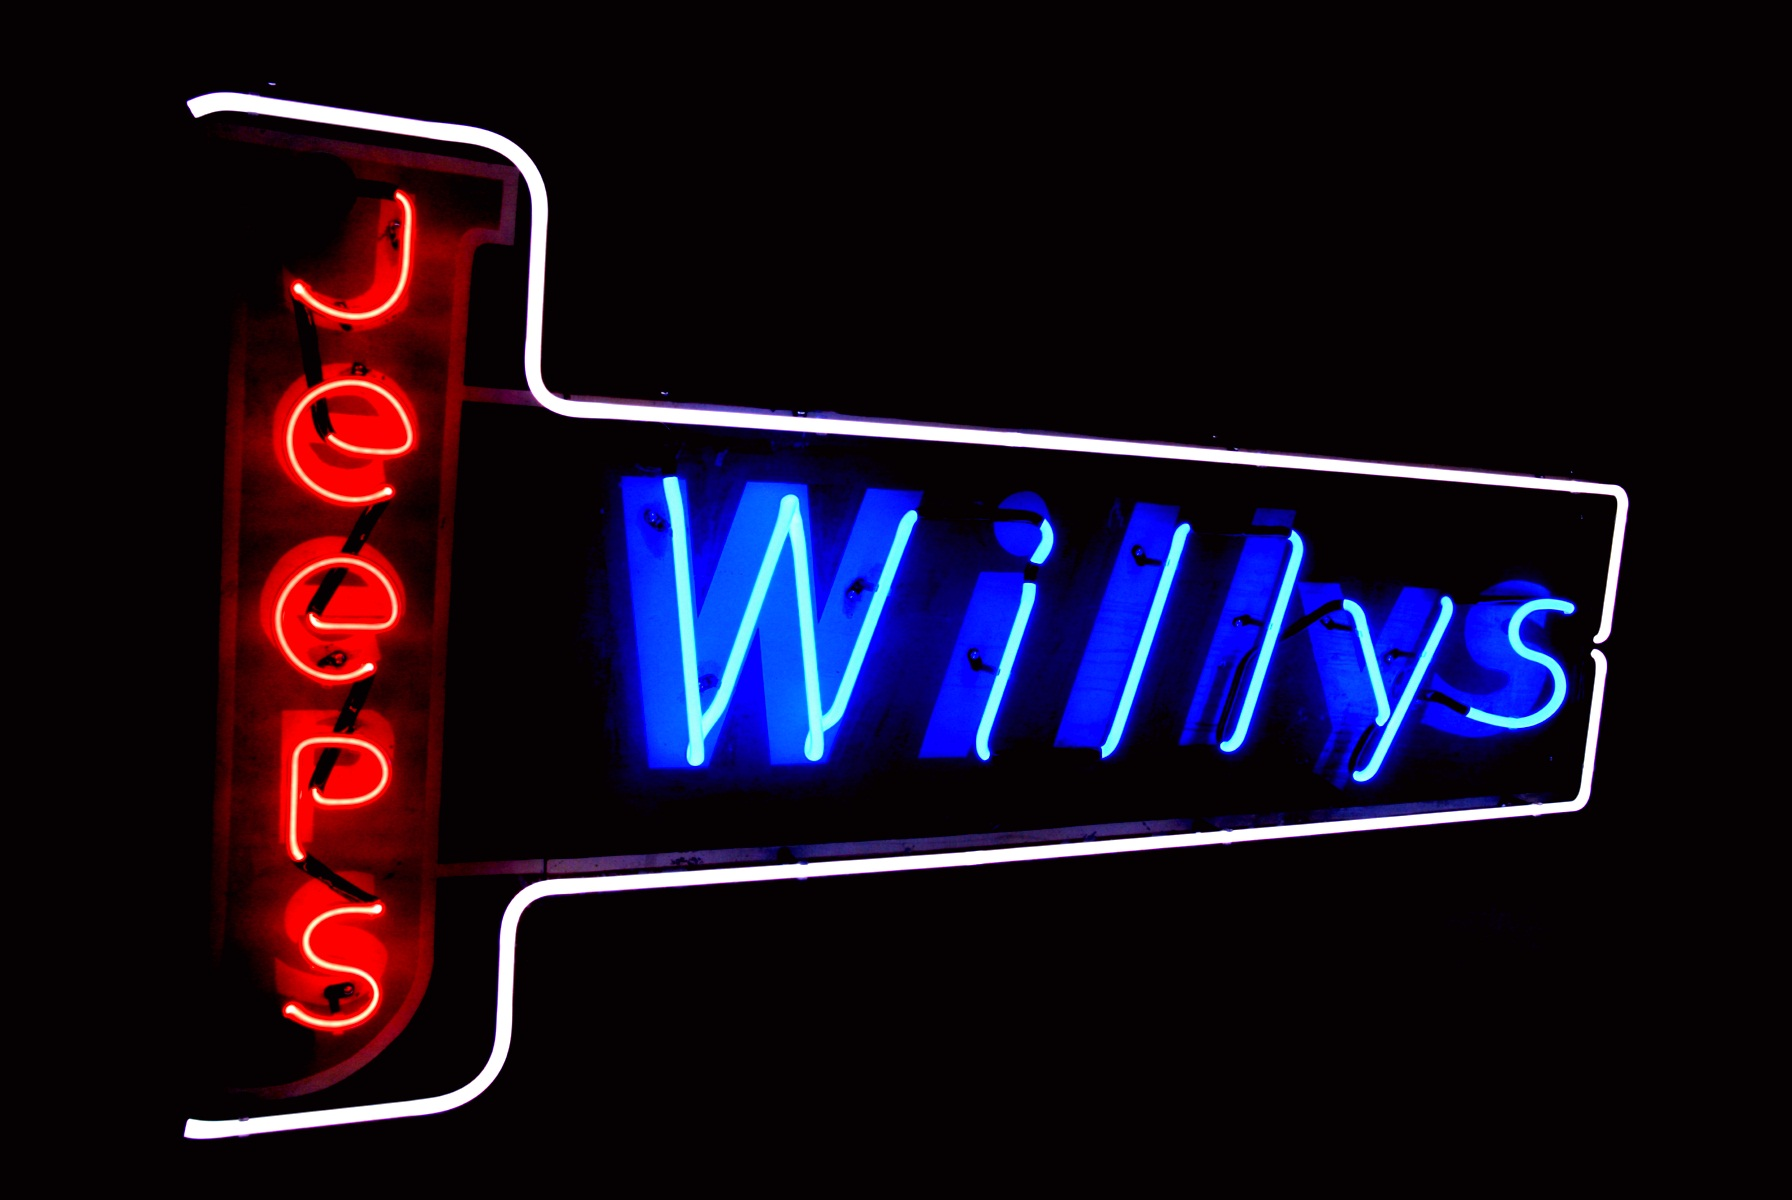 Willys Jeeps Neon.jpg